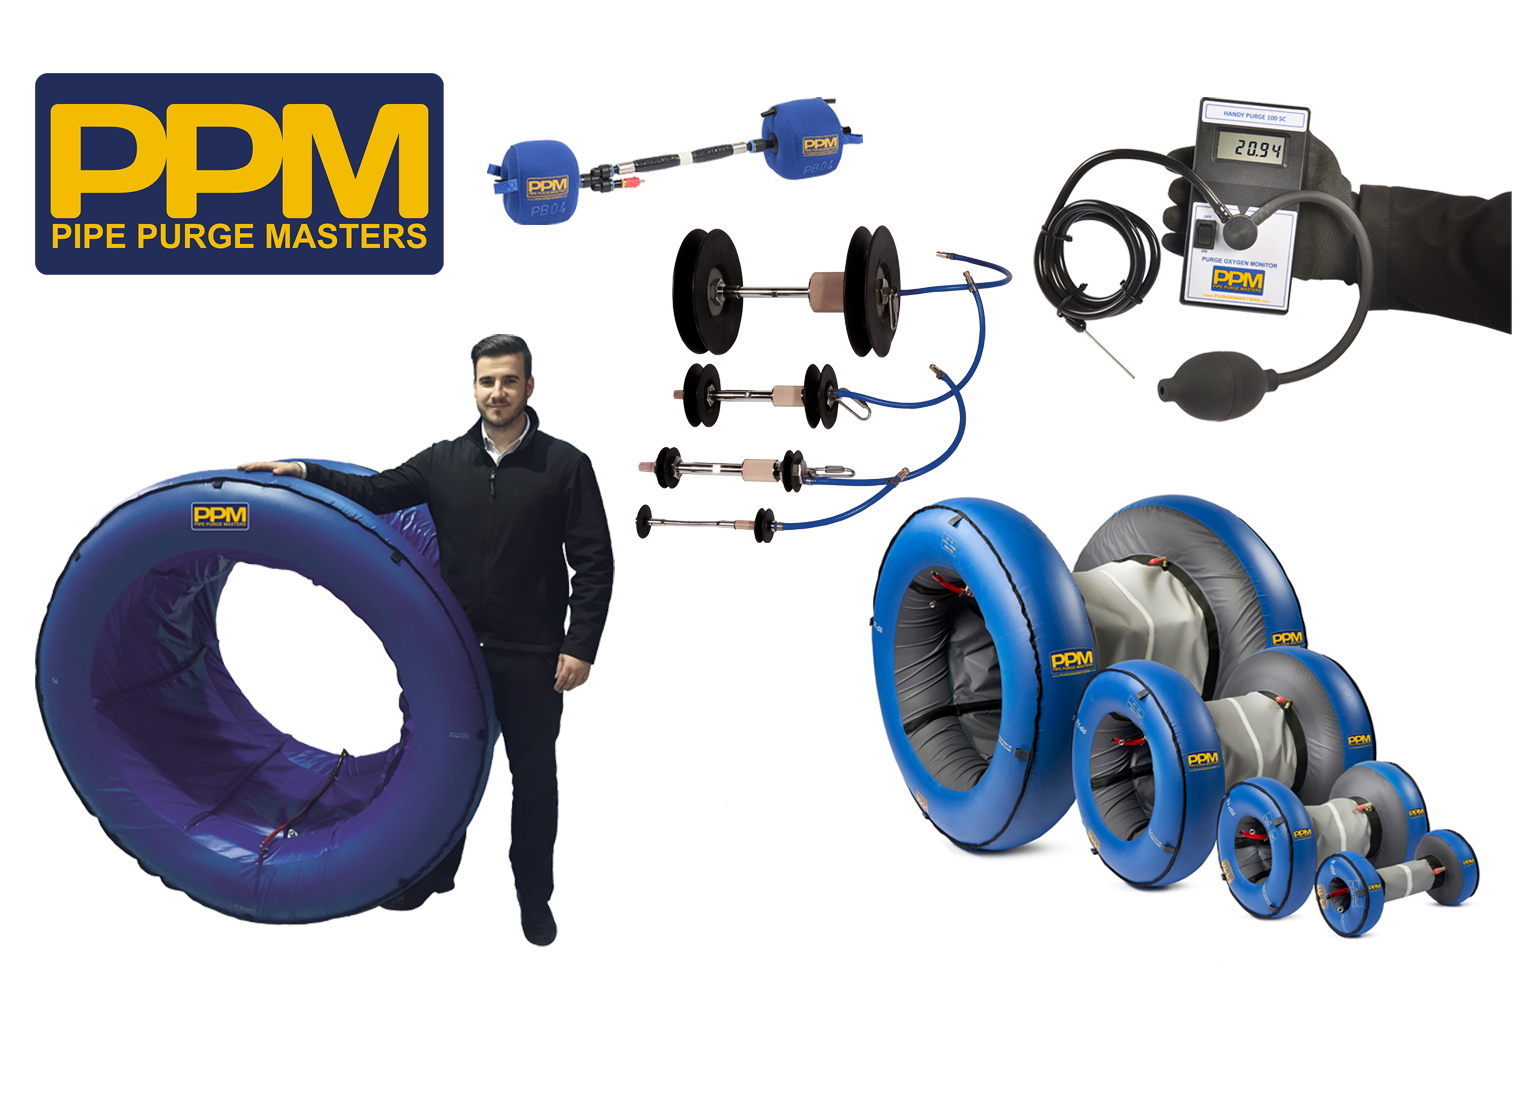 PIPE PURGING EQUIPMENT Distributors & Suppliers